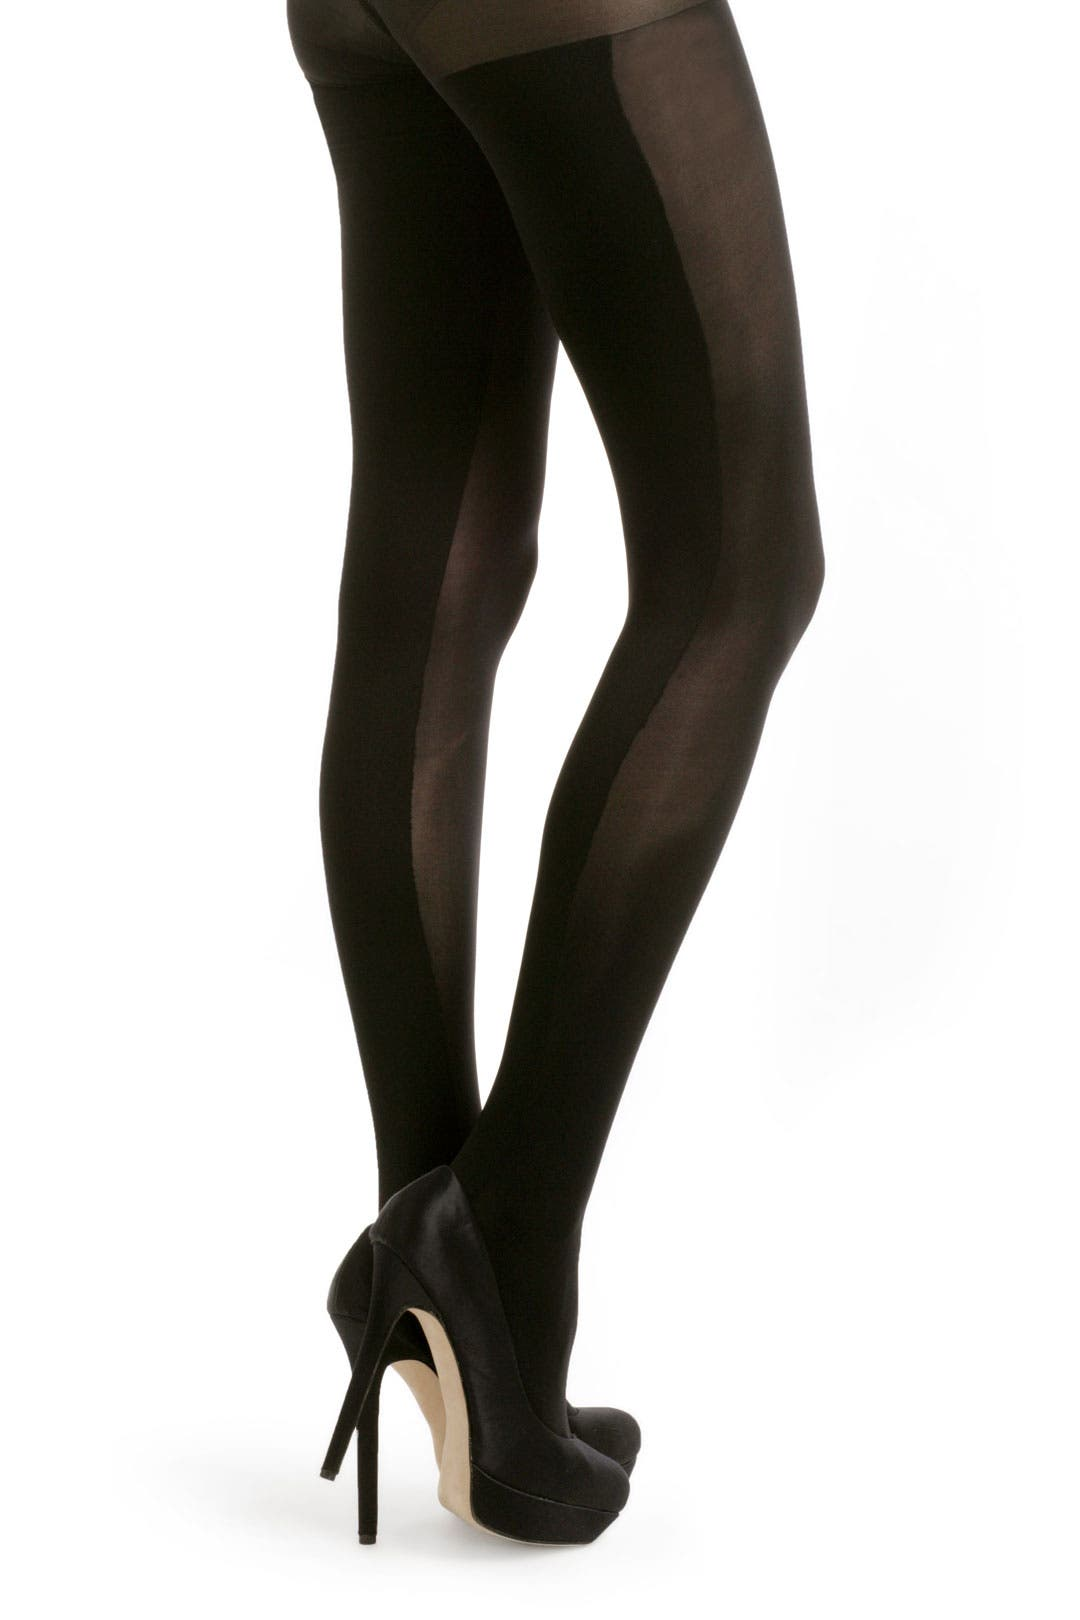 Two Tone Tights by Cynthia Rowley Tights